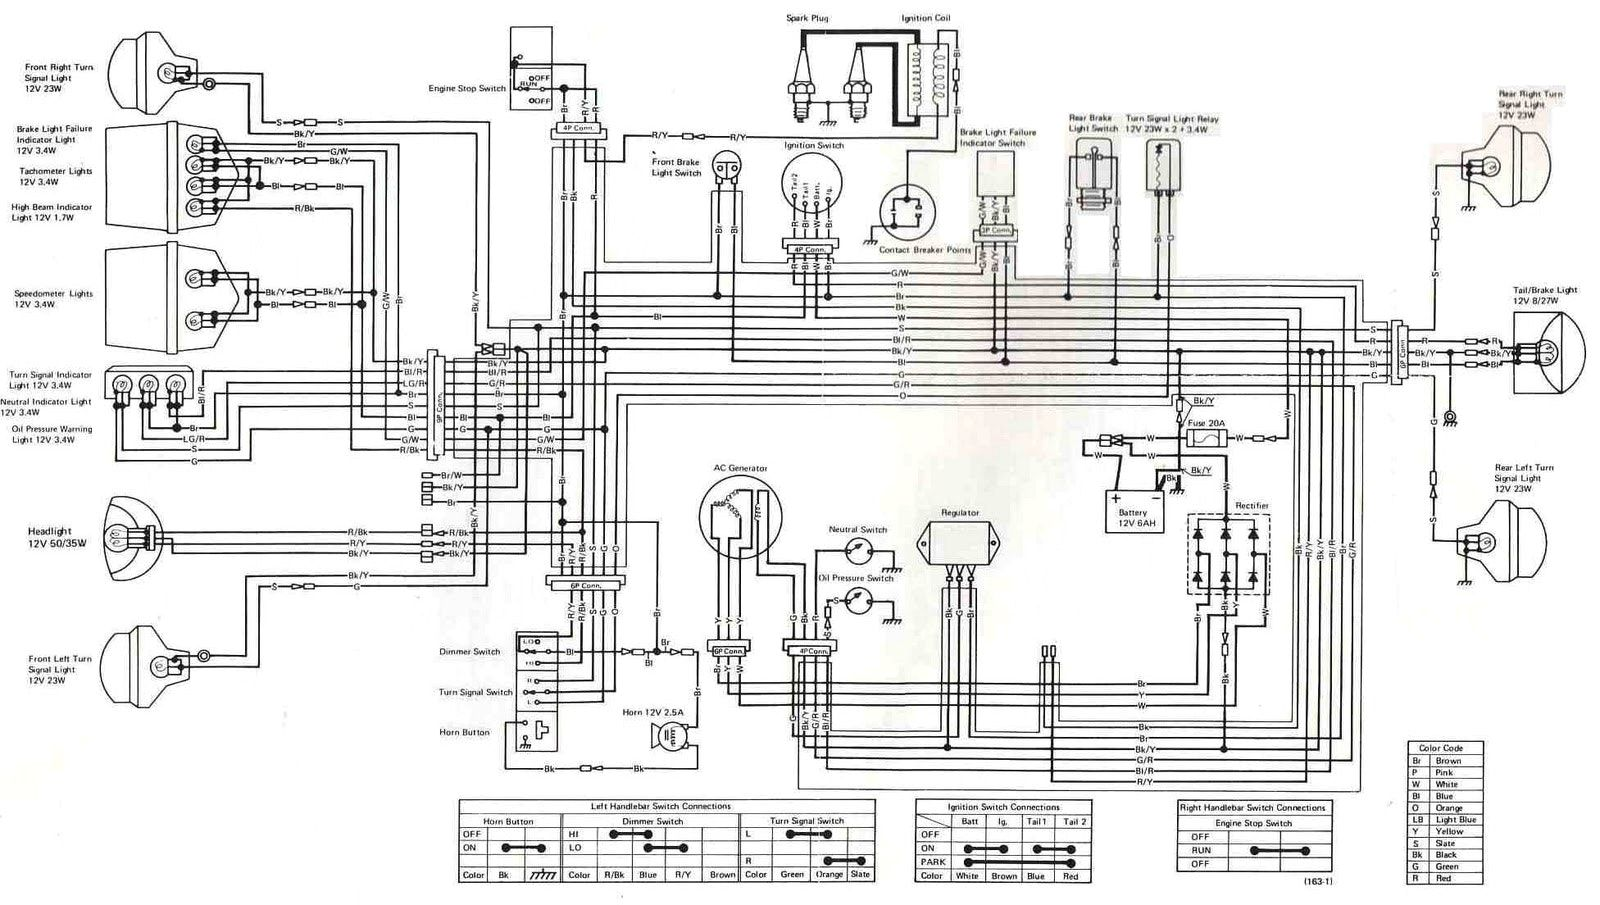 Case 530 Wiring Harness Library International 966 Diagram 1981 Kawasaki 440 Ltd Simple Schema 1494 400